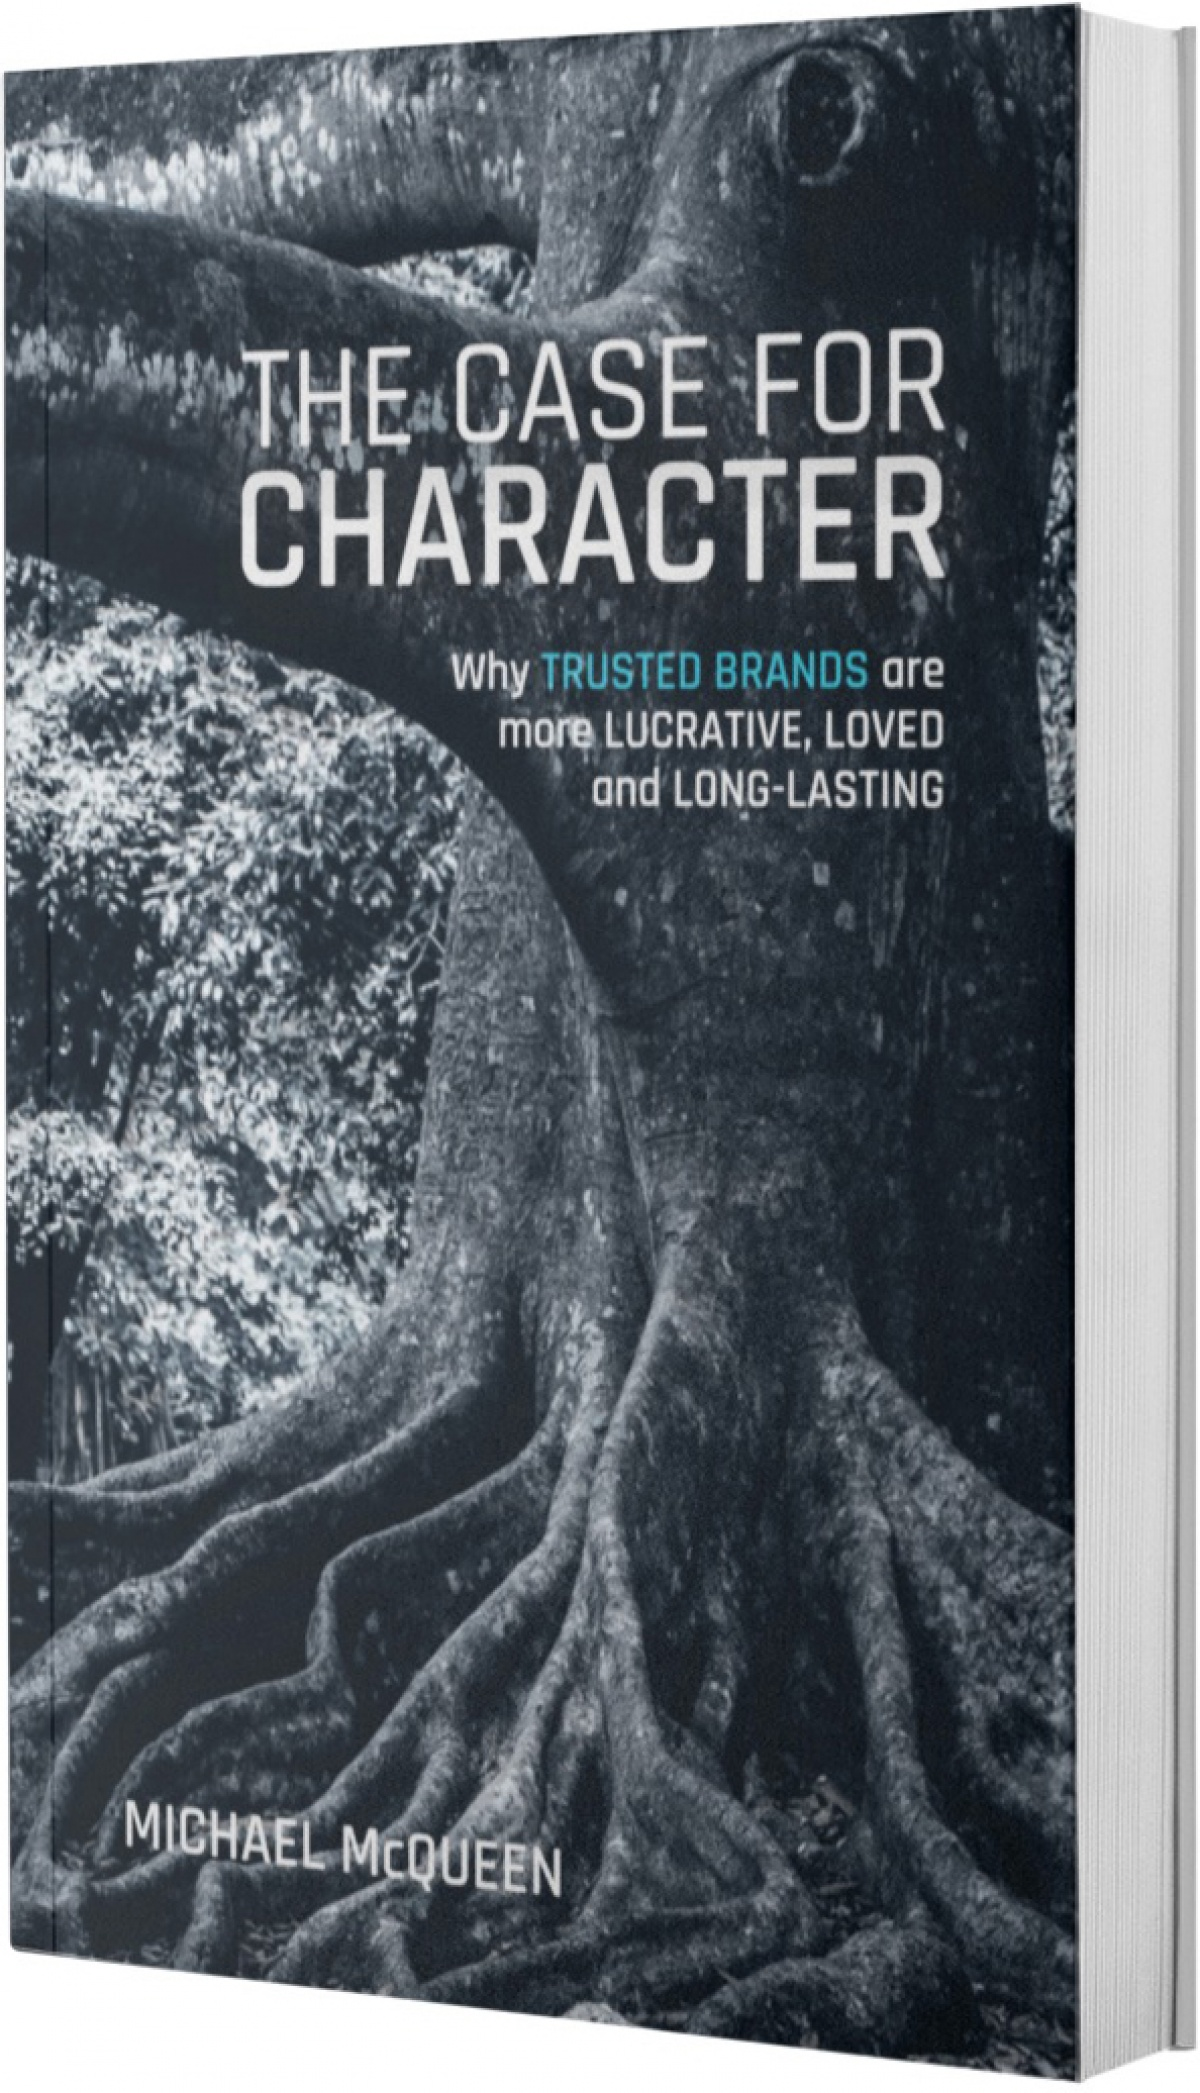 The Case for Character